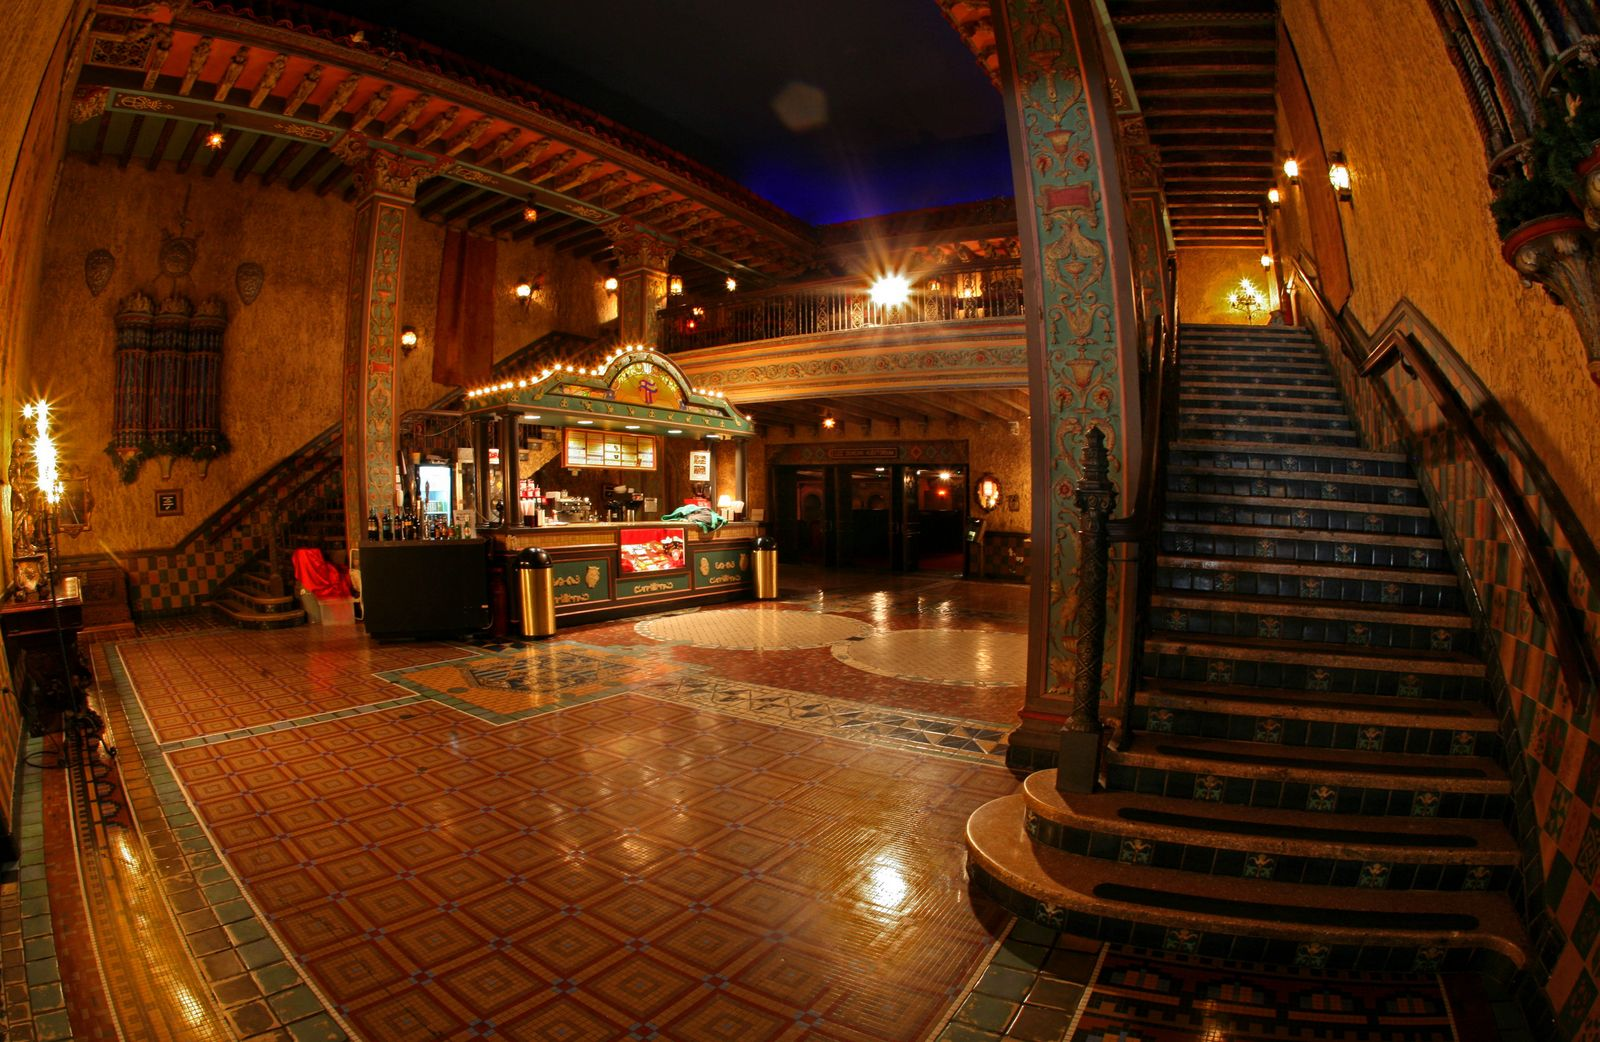 The Tampa Theater lobby